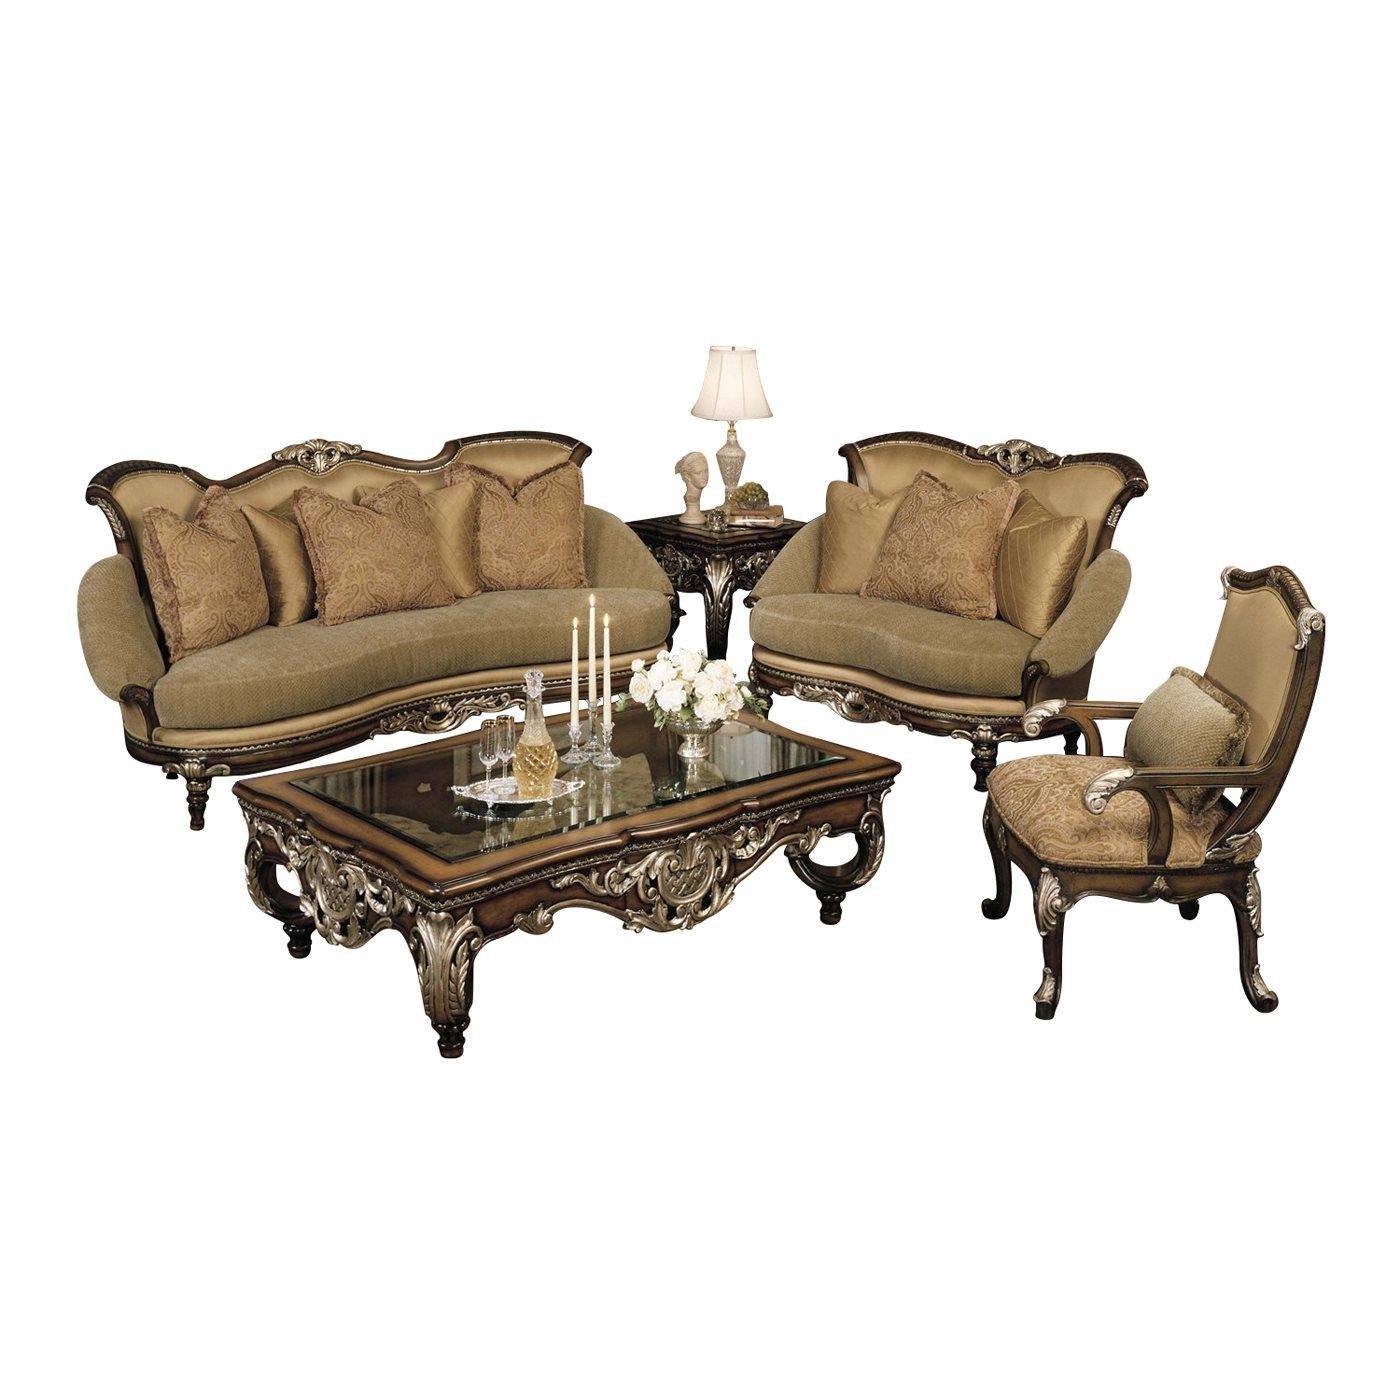 Classic, Traditional Silver, Tan, Dark Brown, Golden Beige Chenille and Fabric, Wood, Solid Hardwood Sofa Set 3 pcs Catalon by Benneti